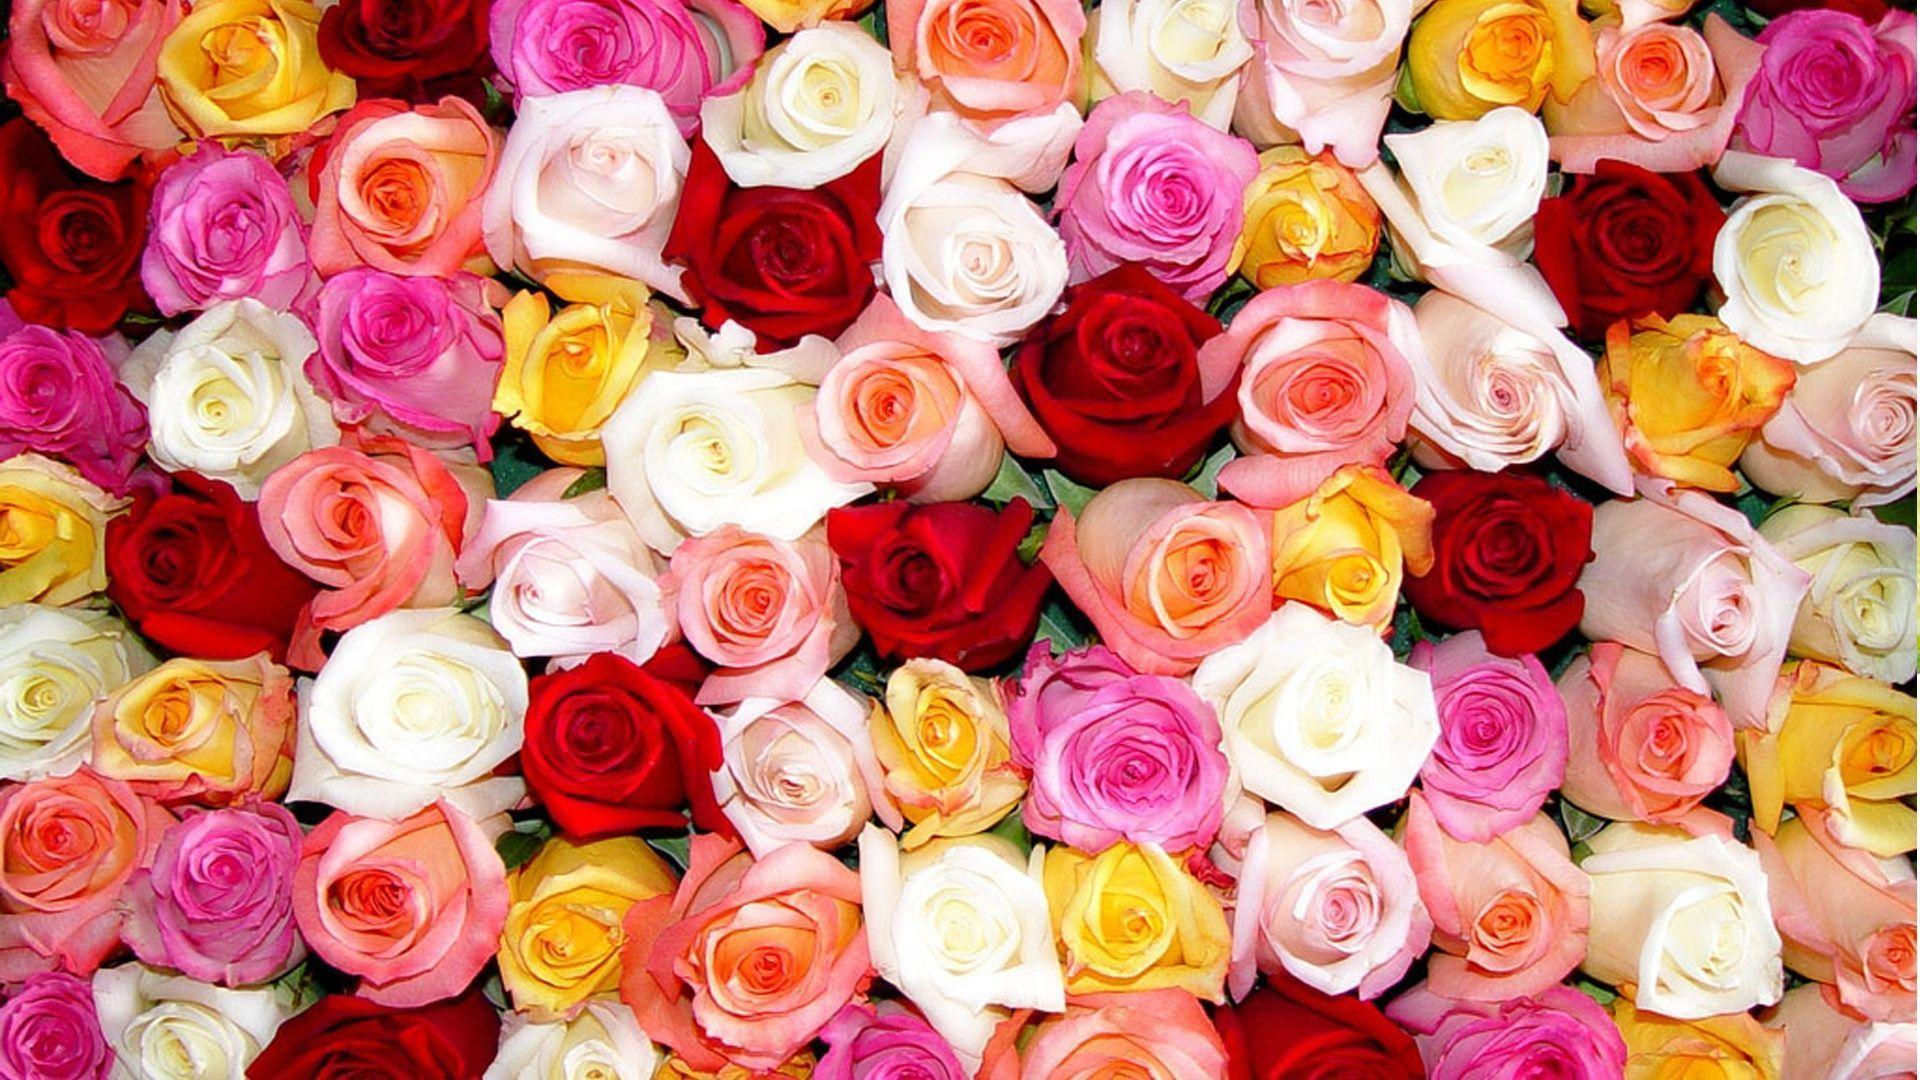 Colorful Roses Wallpaper HD - Rose Day - All Day Images